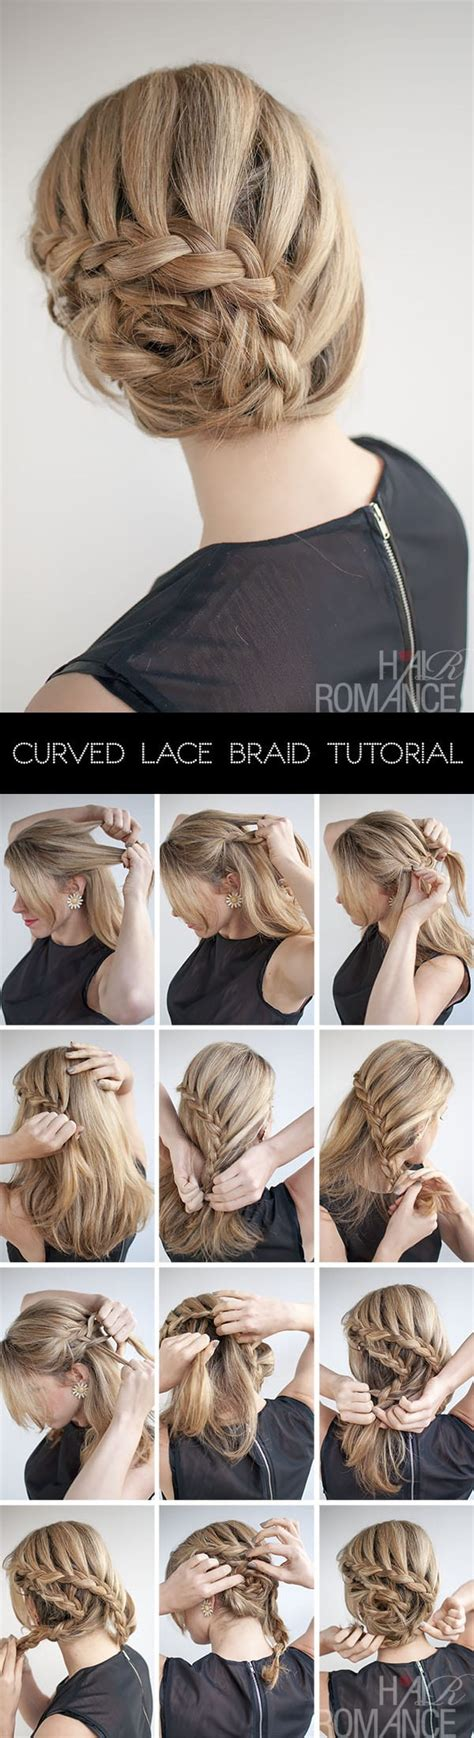 step by step guide to a beauitful hairstyle 9 step by step beautiful hairstyles